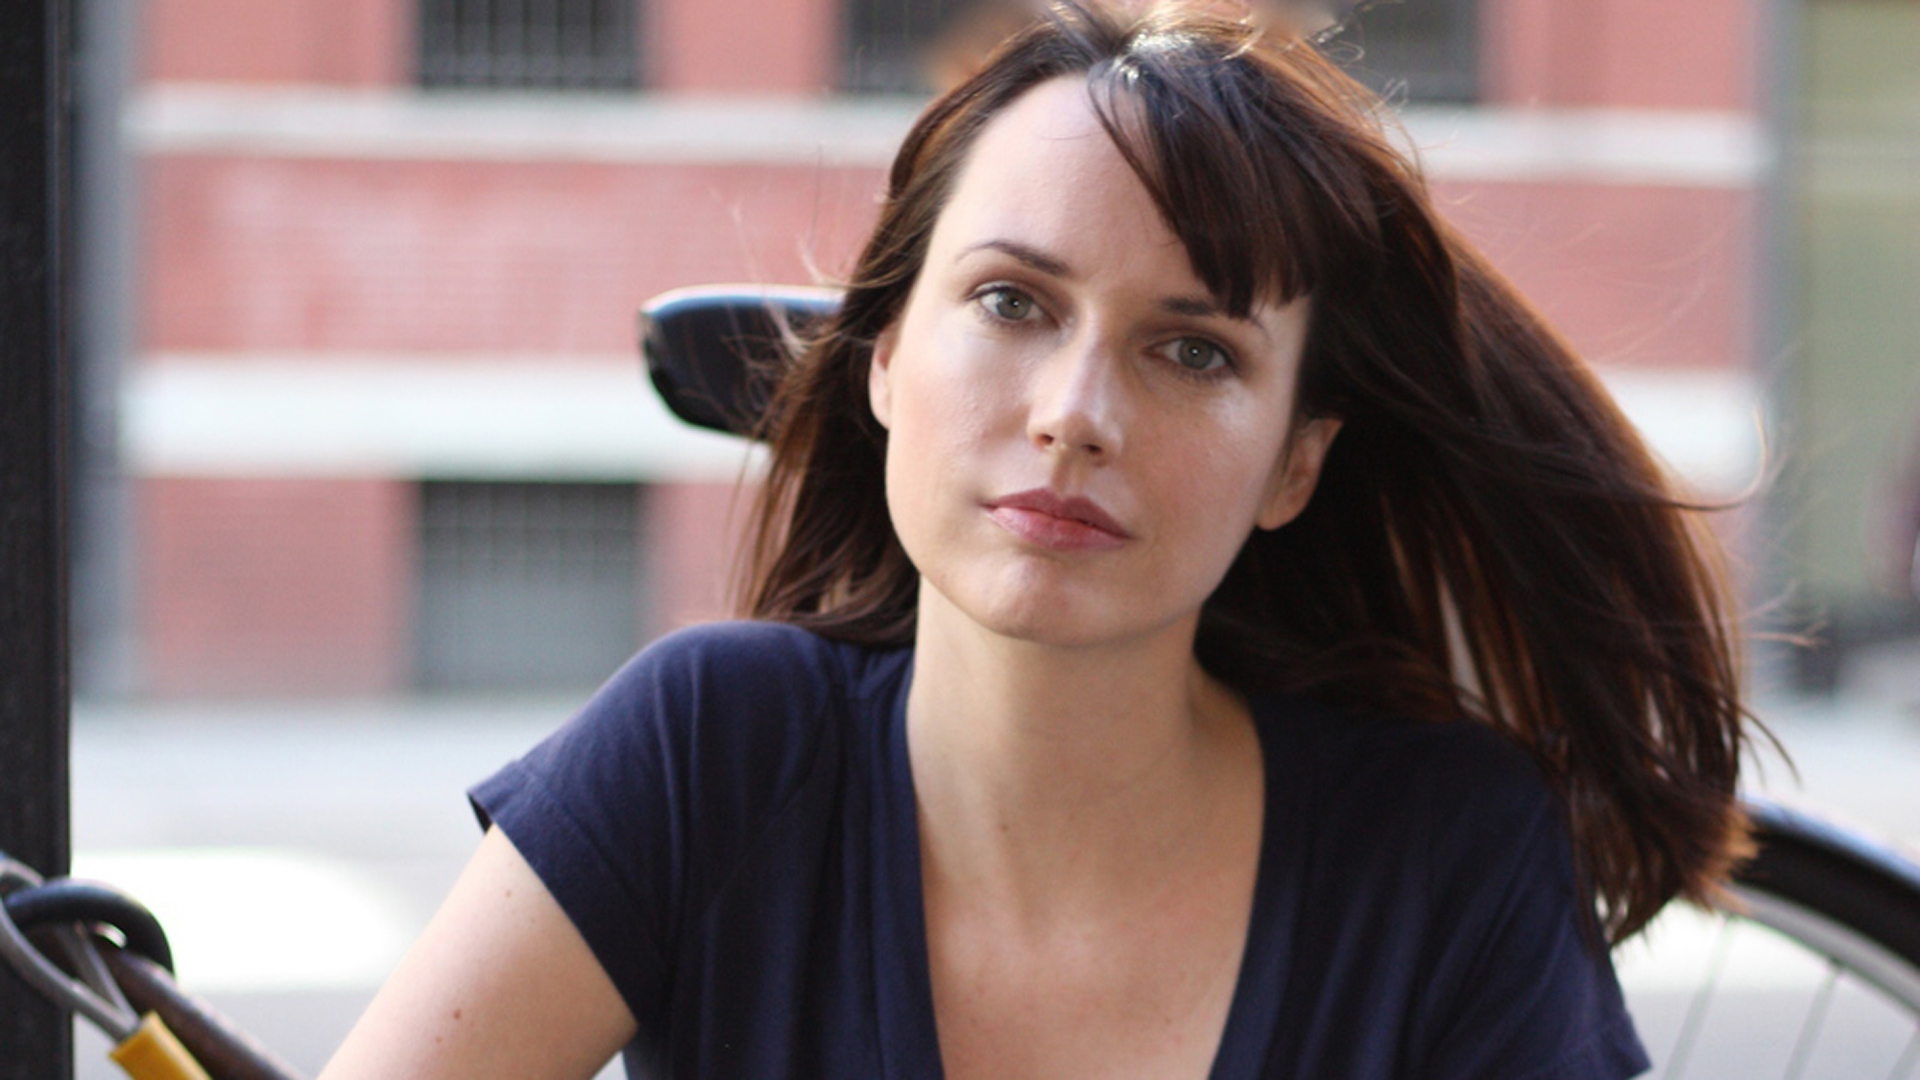 Julie Ann Emery Wallpapers Images Photos Pictures Backgrounds 1920x1080